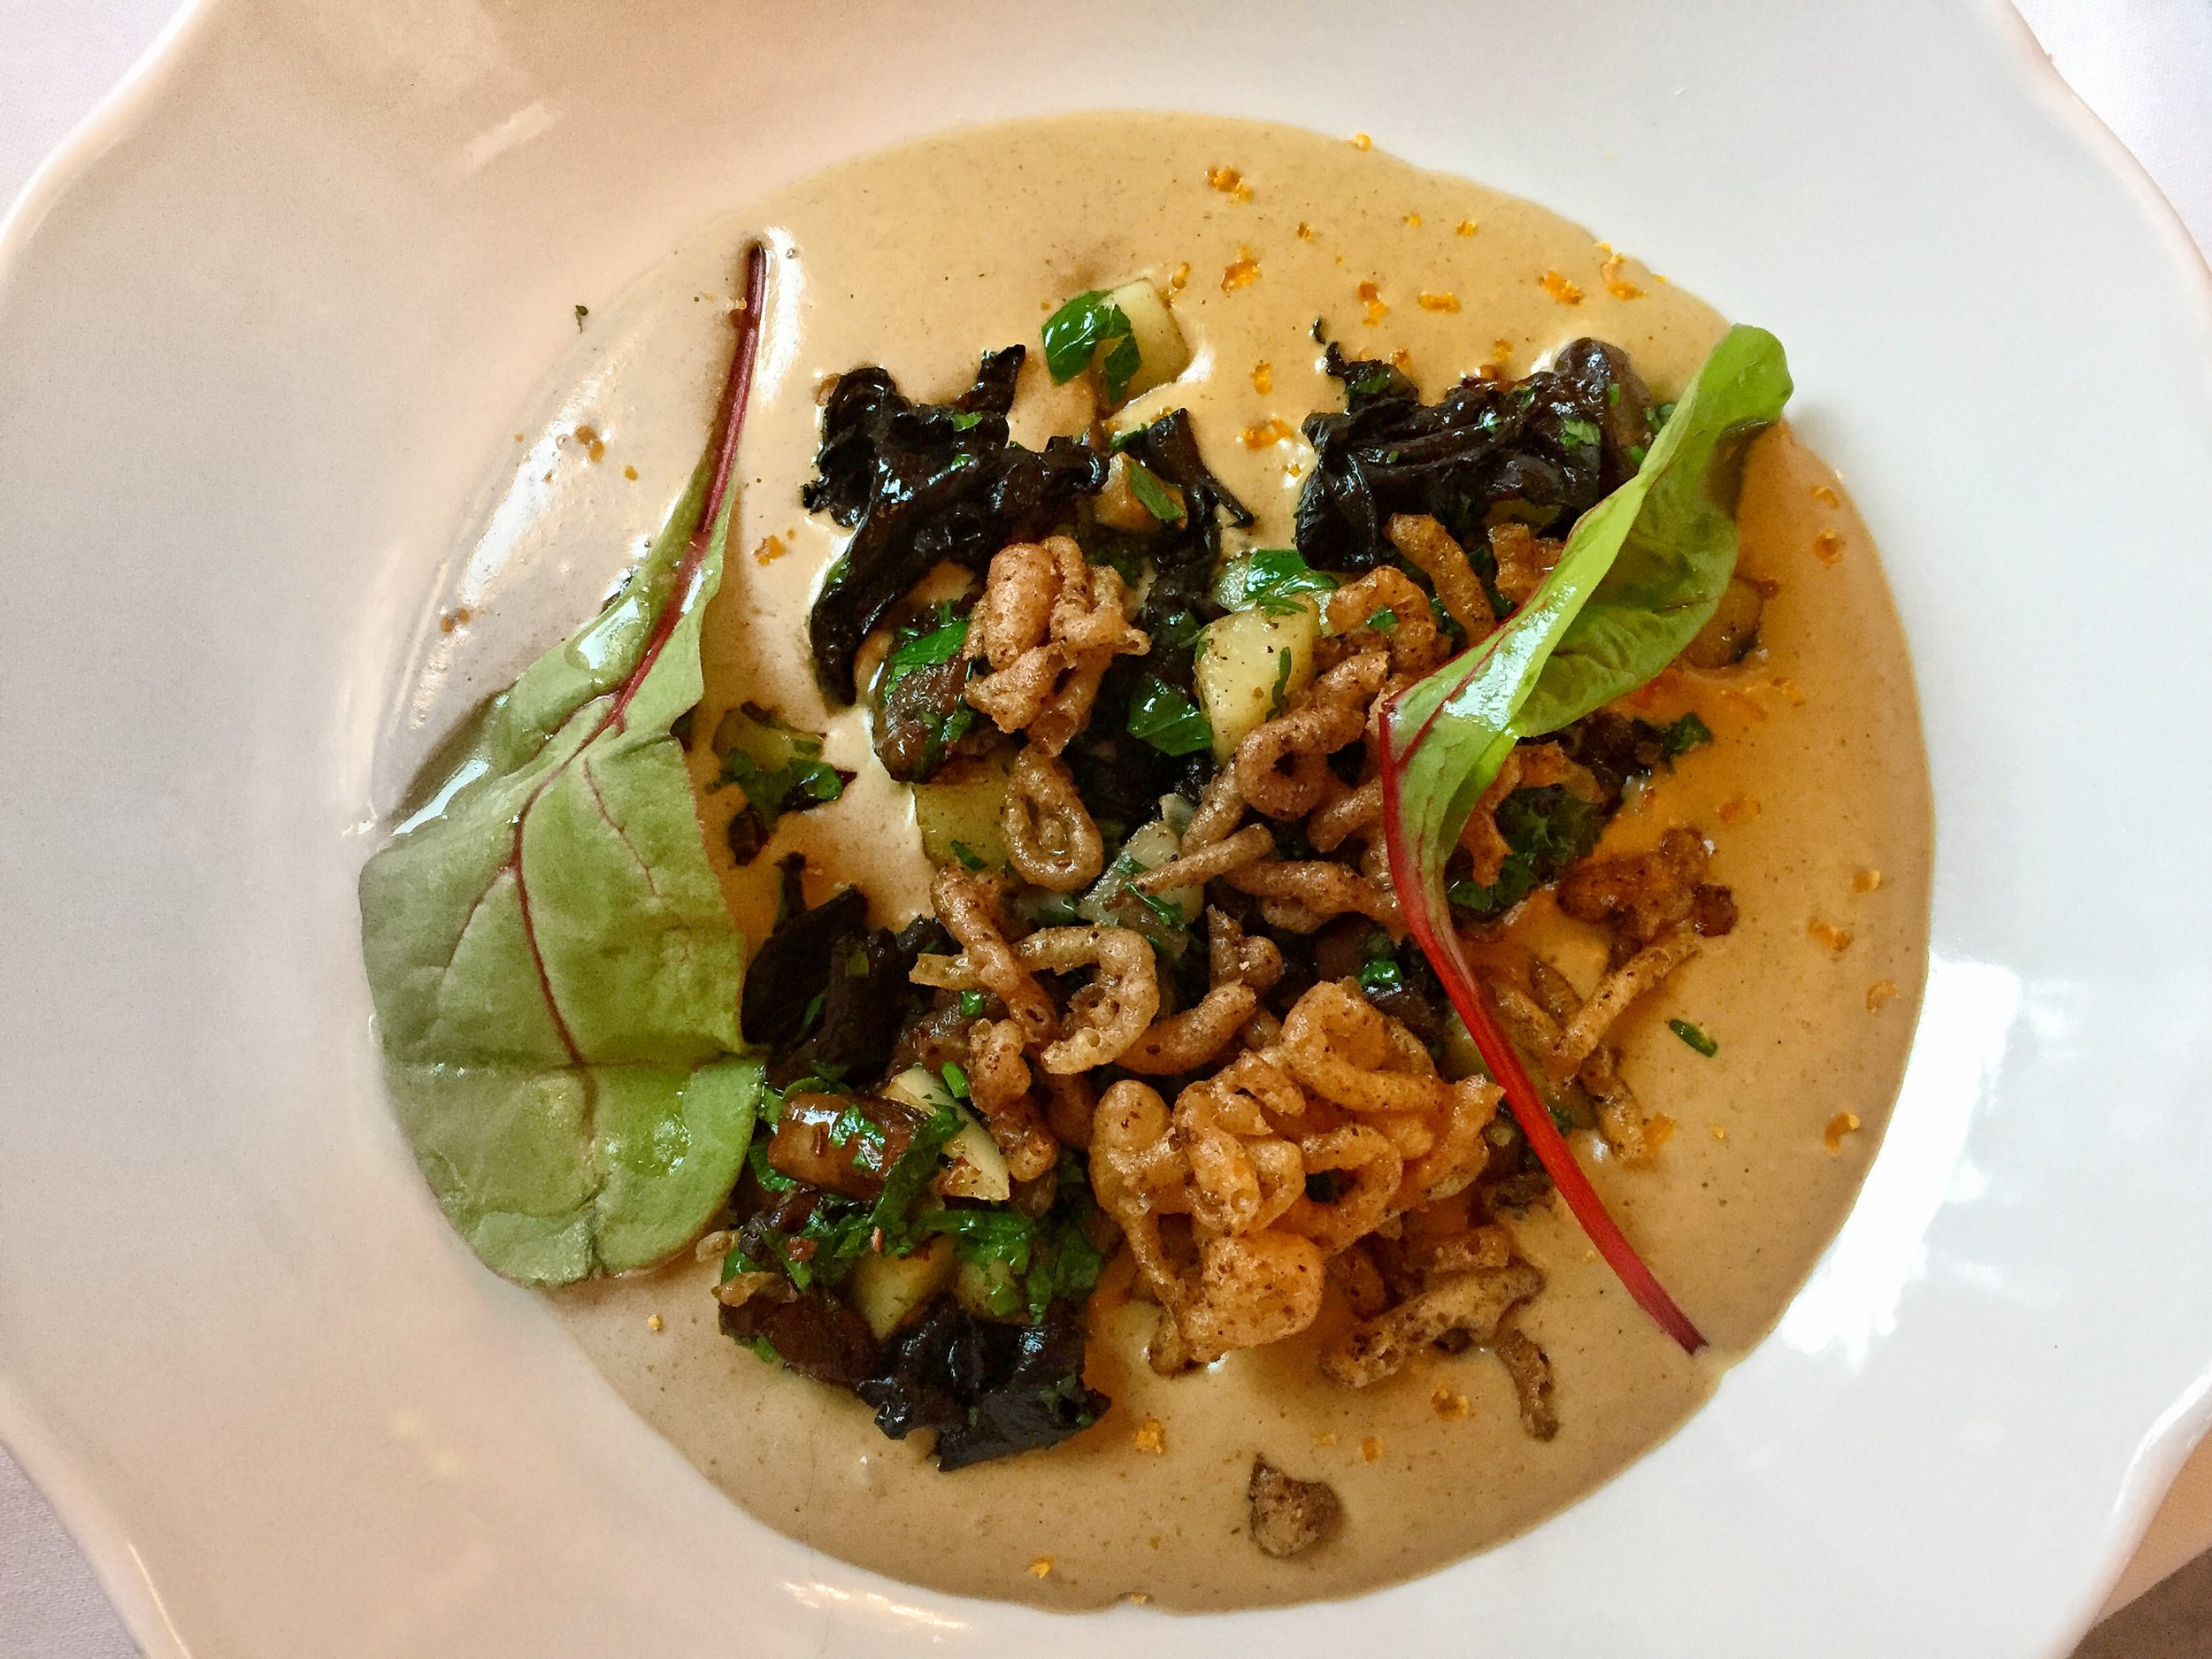 porcini mushrooms & Malaber spinach at Café Savoy